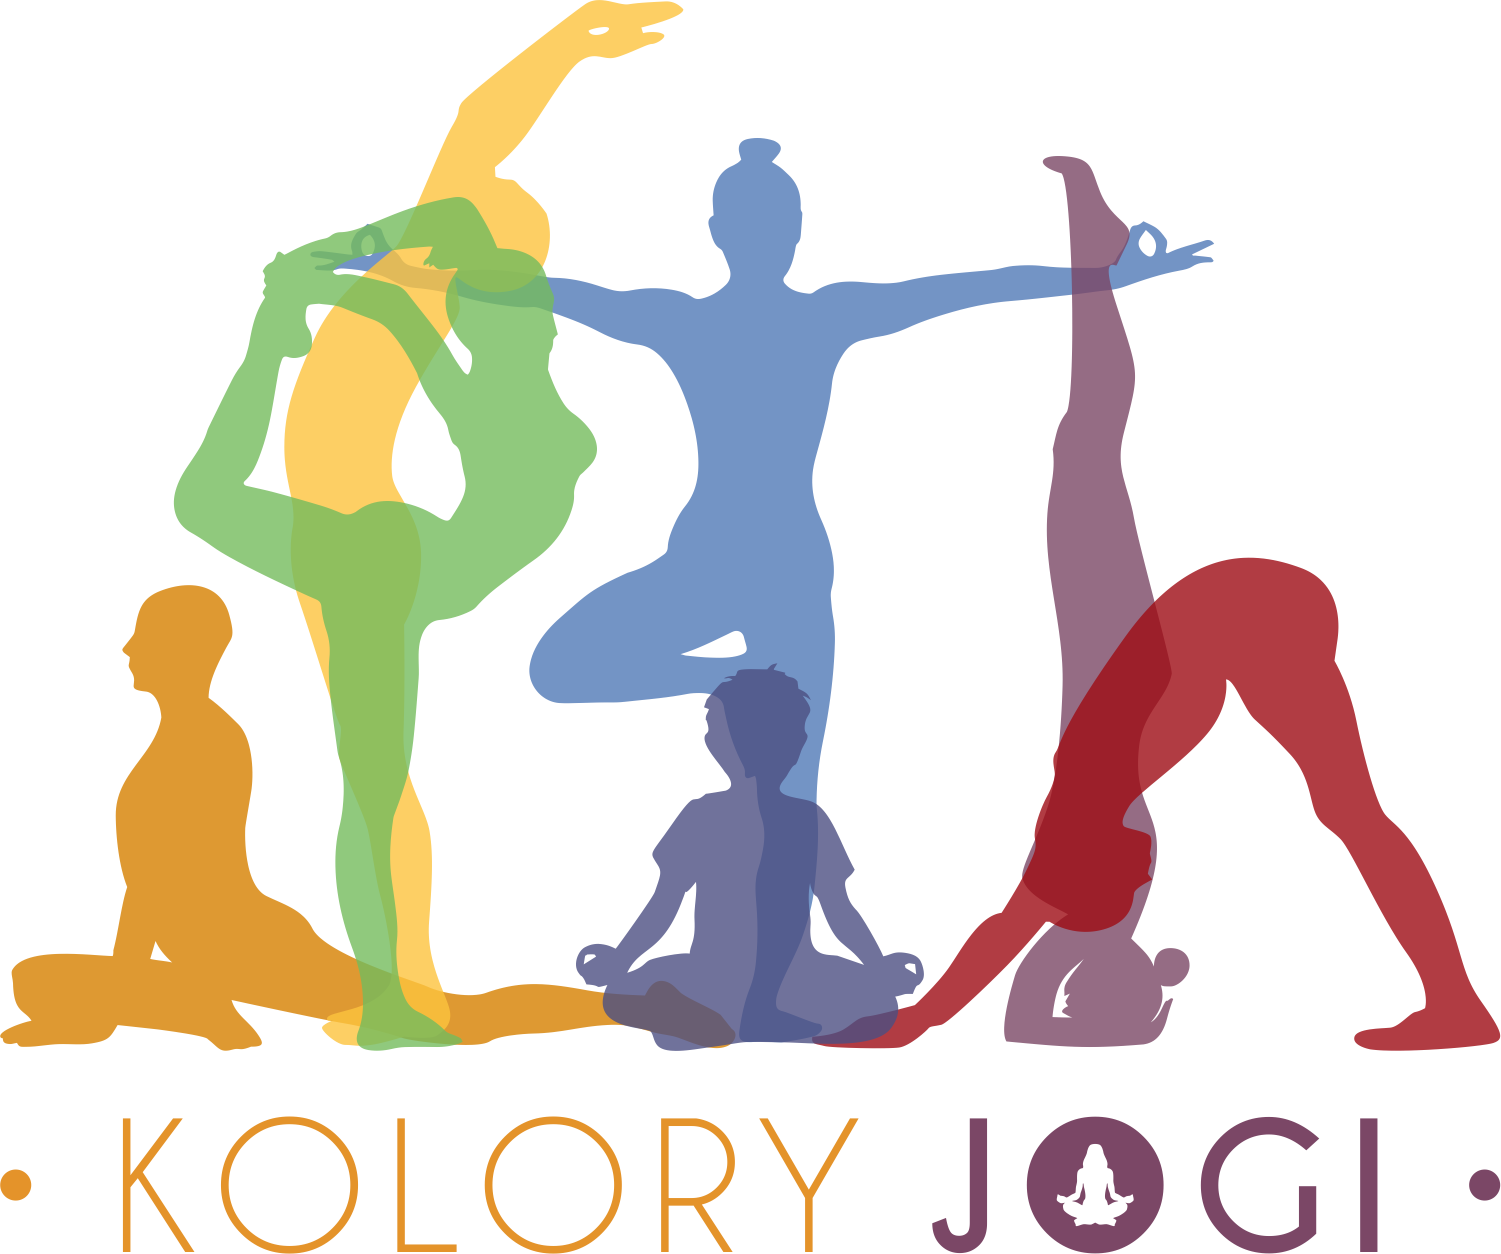 Colors of joga